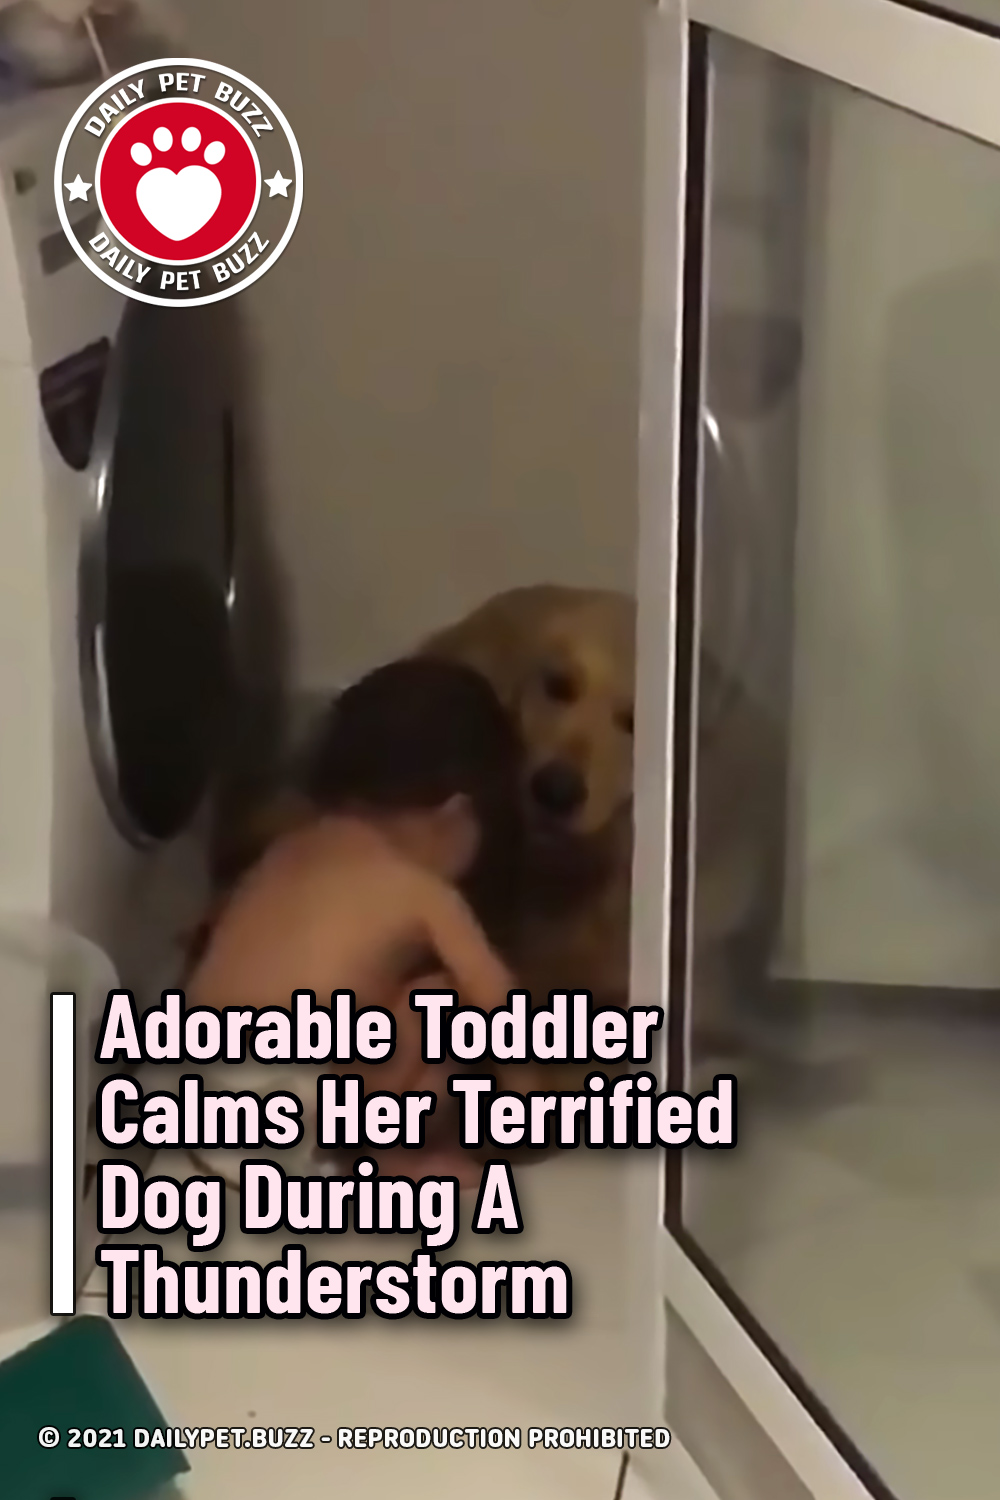 Adorable Toddler Calms Her Terrified Dog During A Thunderstorm